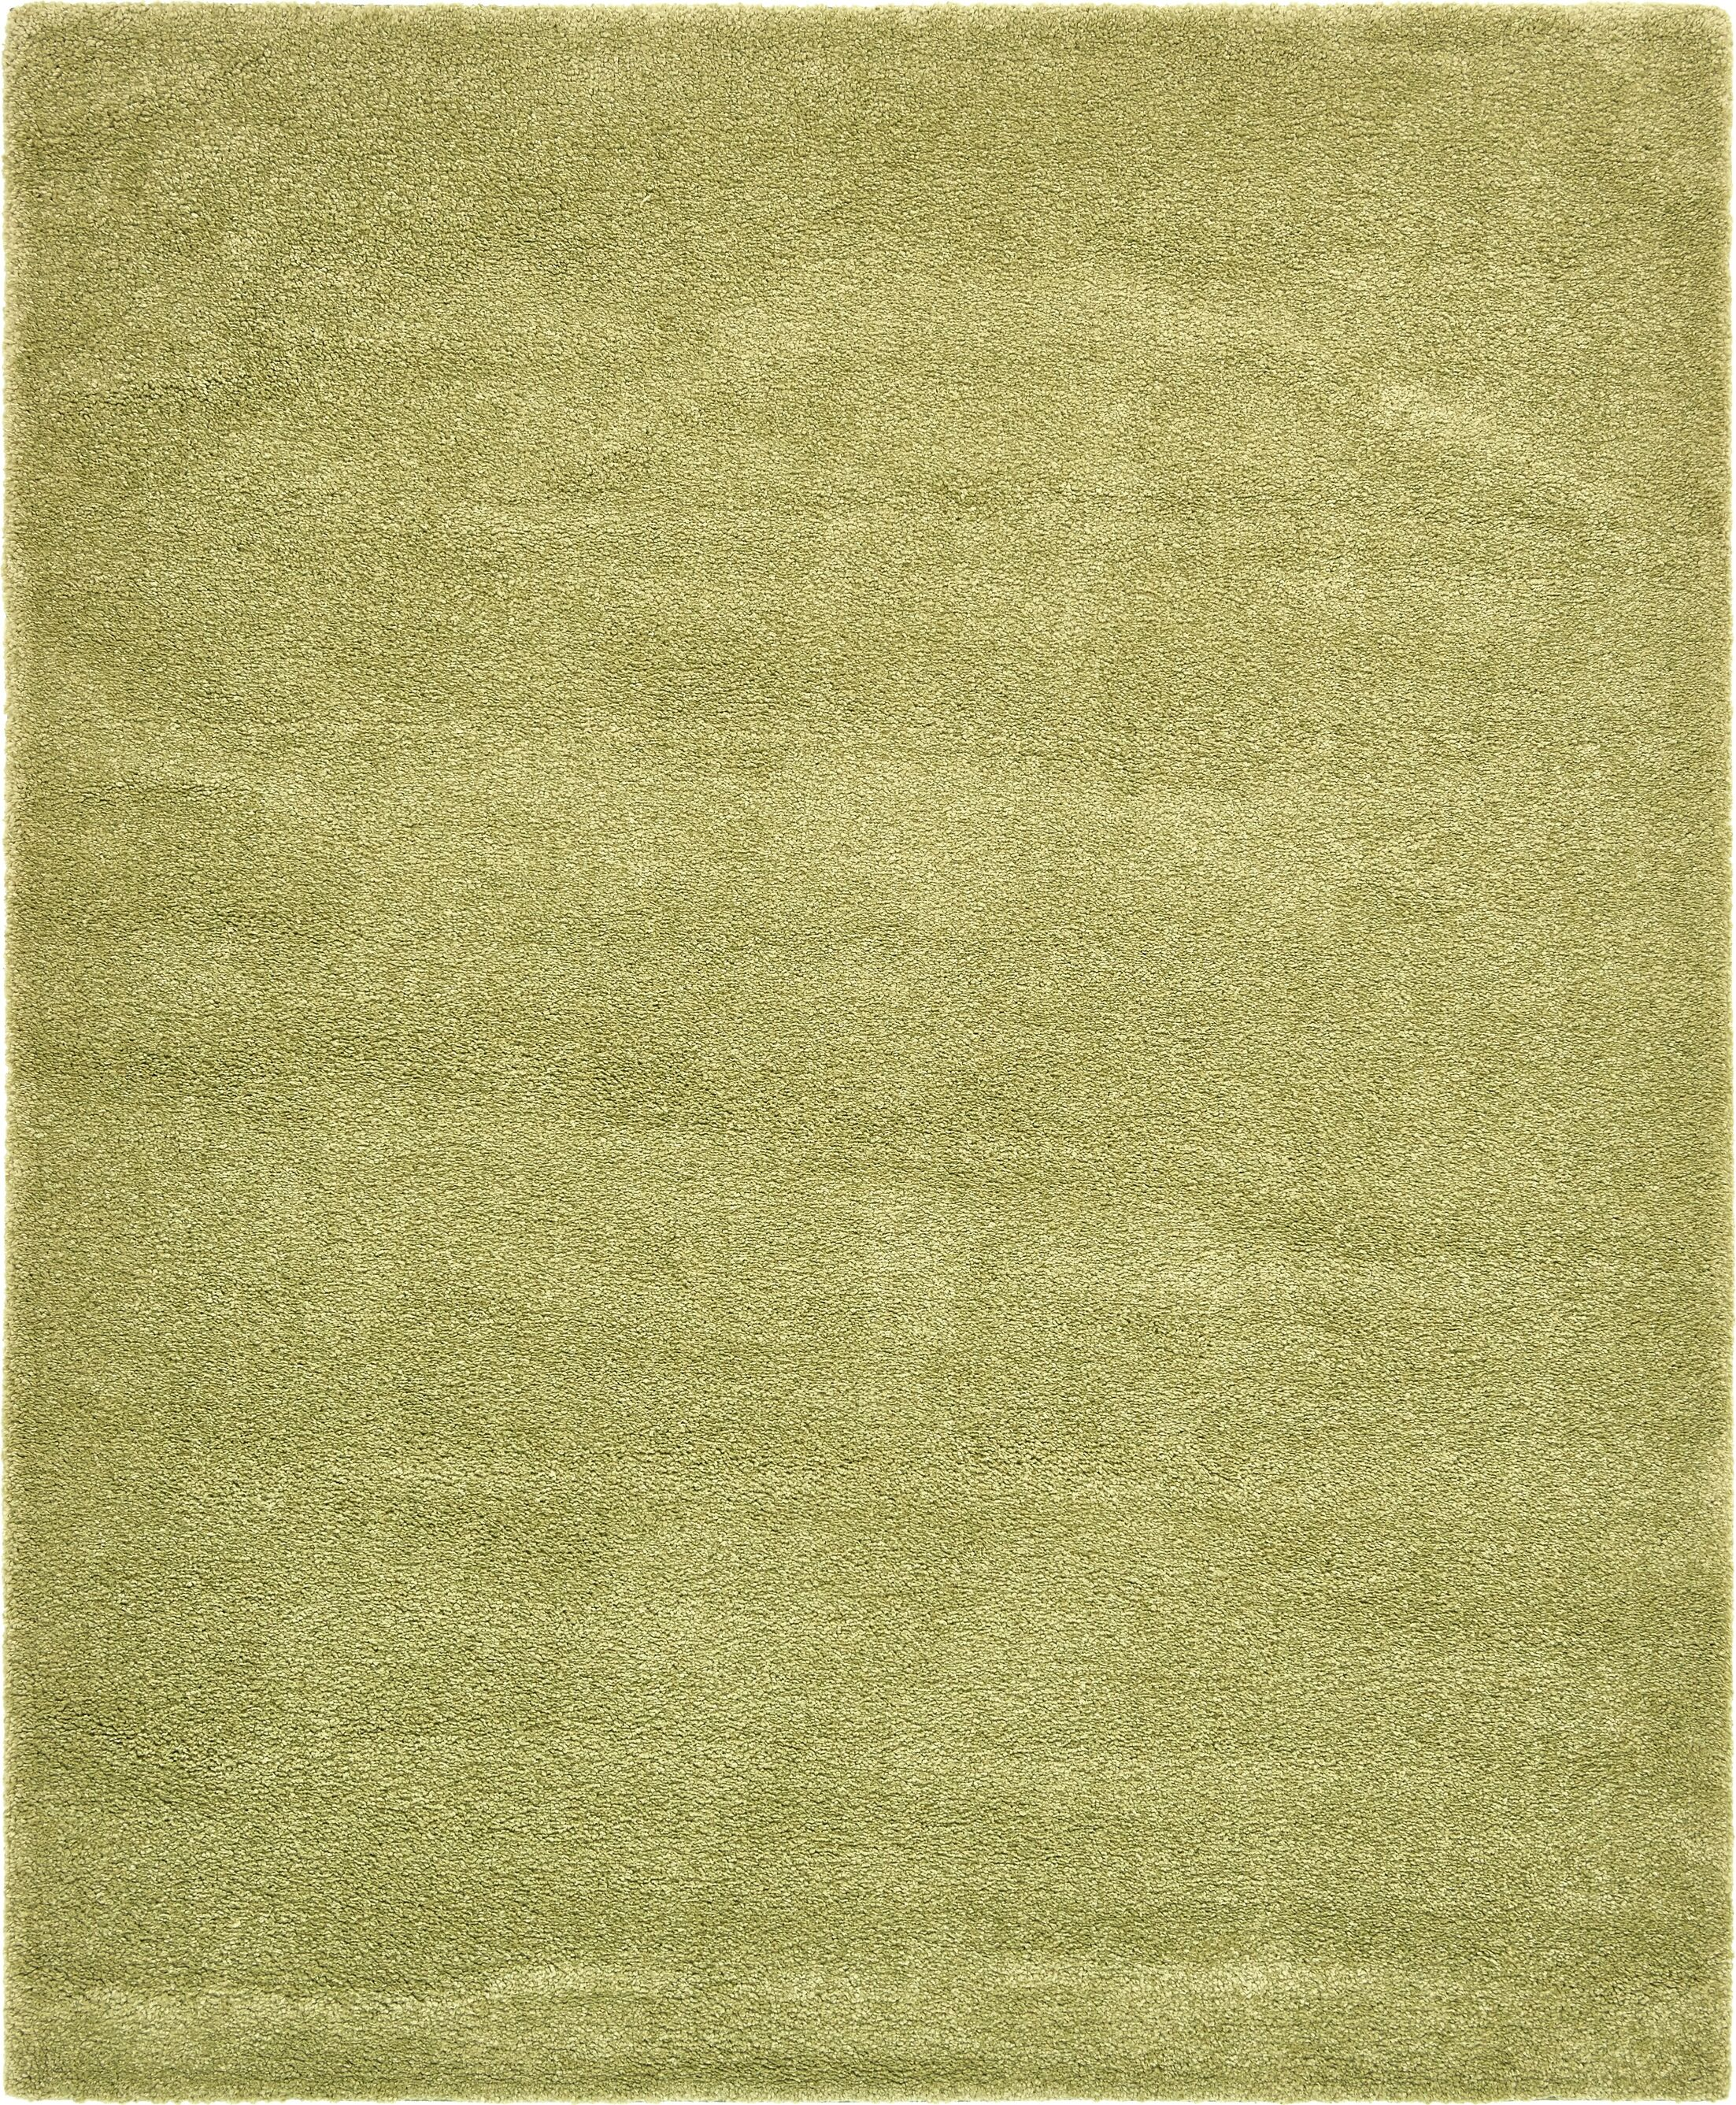 Sydnee Light Green Area Rug Rug Size: Rectangle 8' x 10'